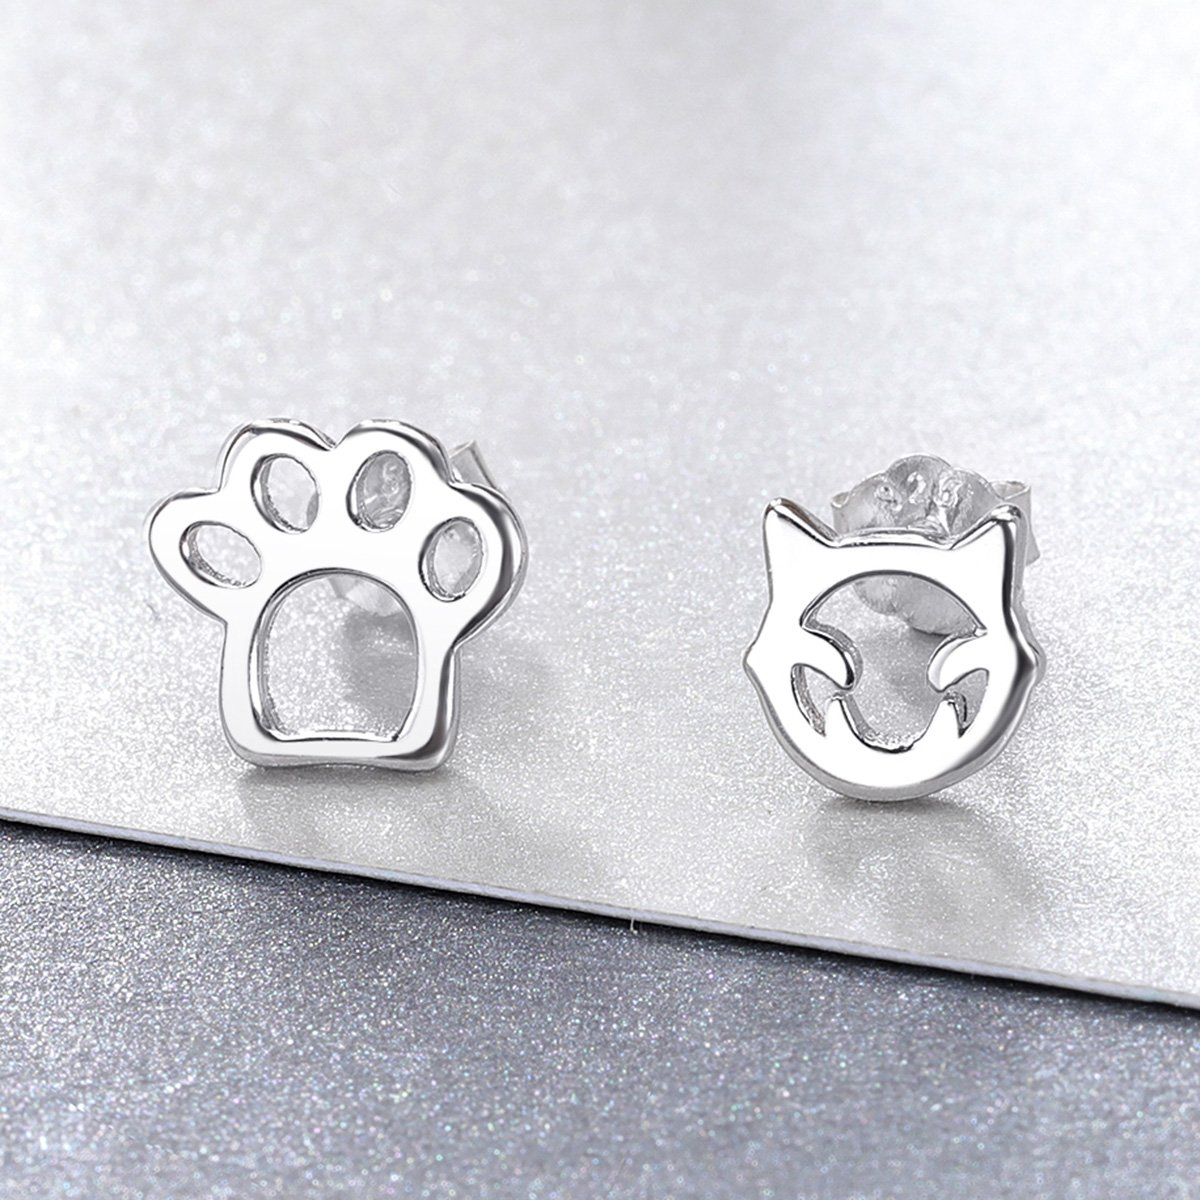 White Gold Plated Paw Stud Earrings for Women Girls,Birthday Christmas Valentines Day Gift. BISAER Cute Cat Earrings Sterling Silver